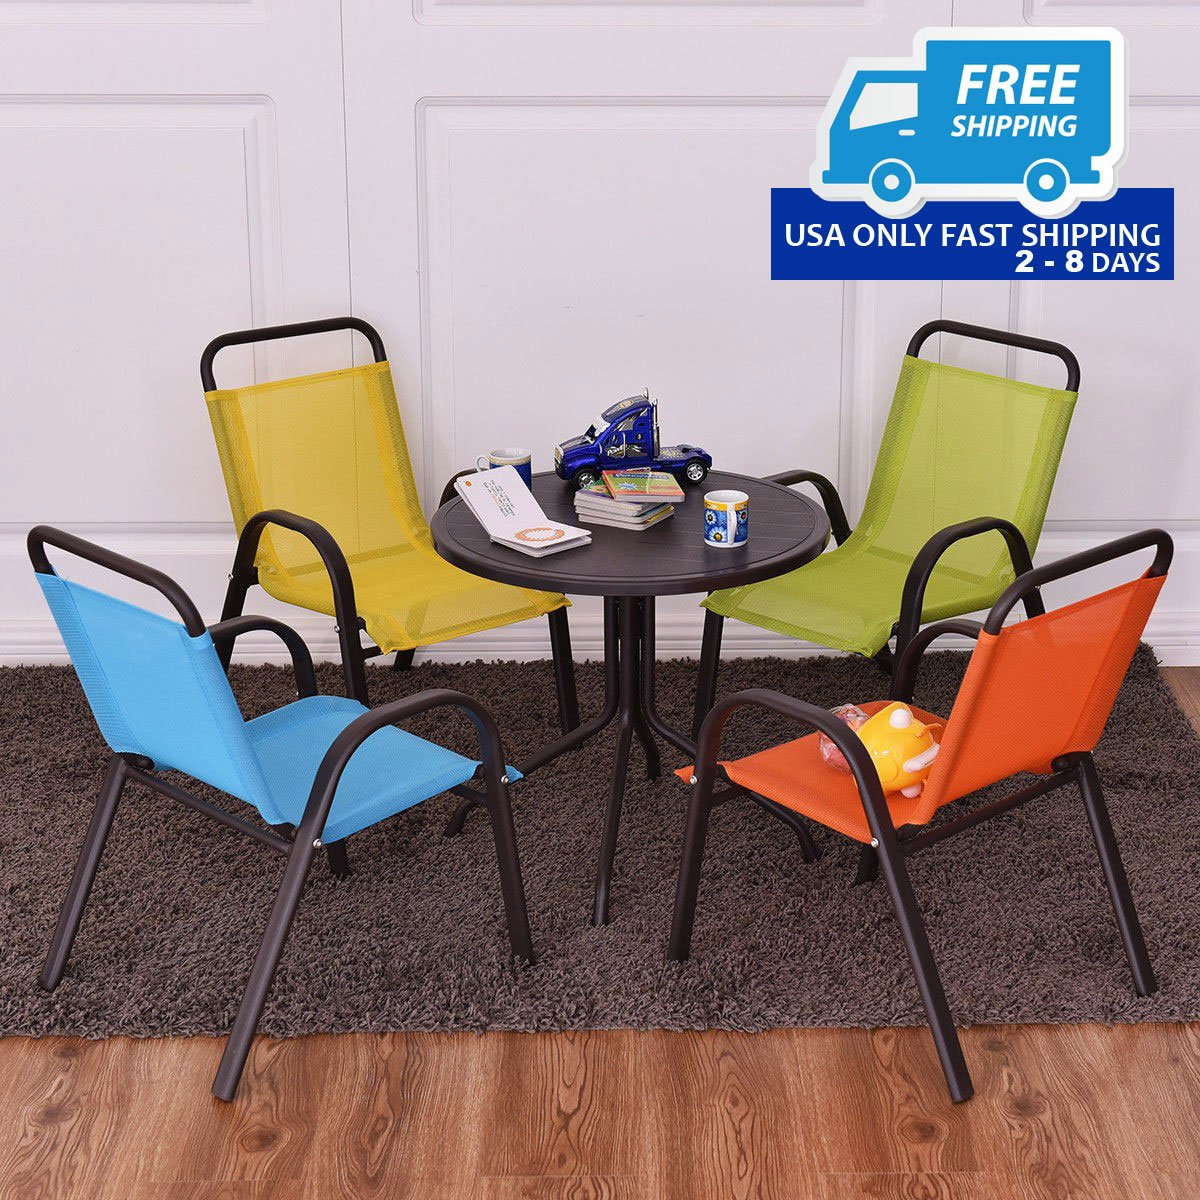 kids indoor table and chairs dining chair cushion covers patio 5 pcs play set